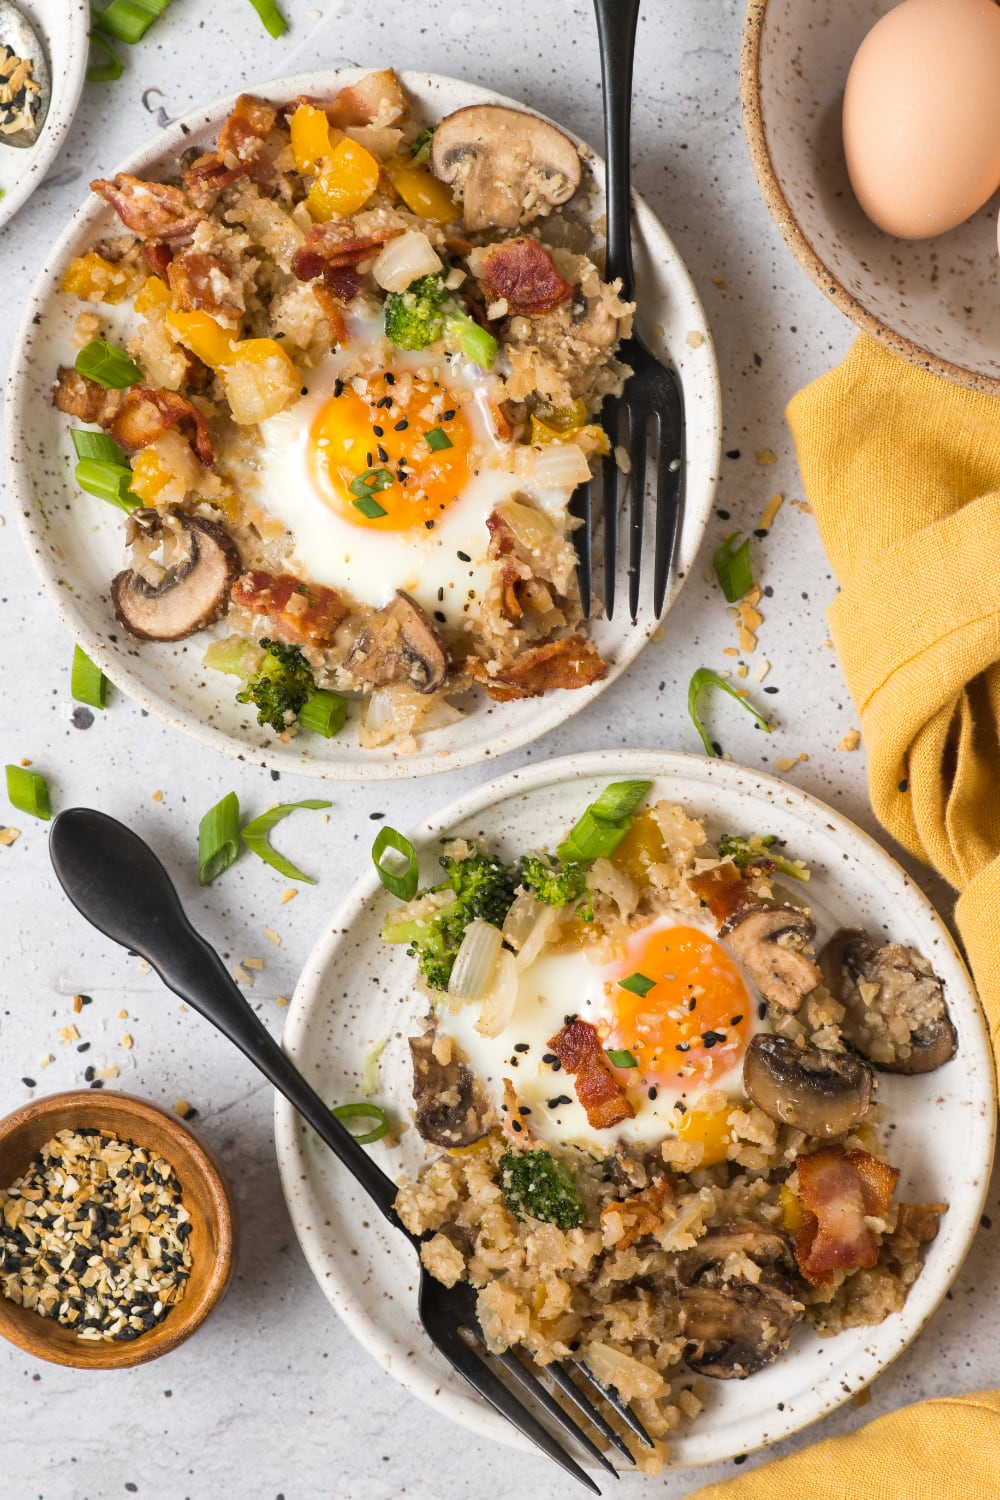 two plates of paleo breakfast fried rice